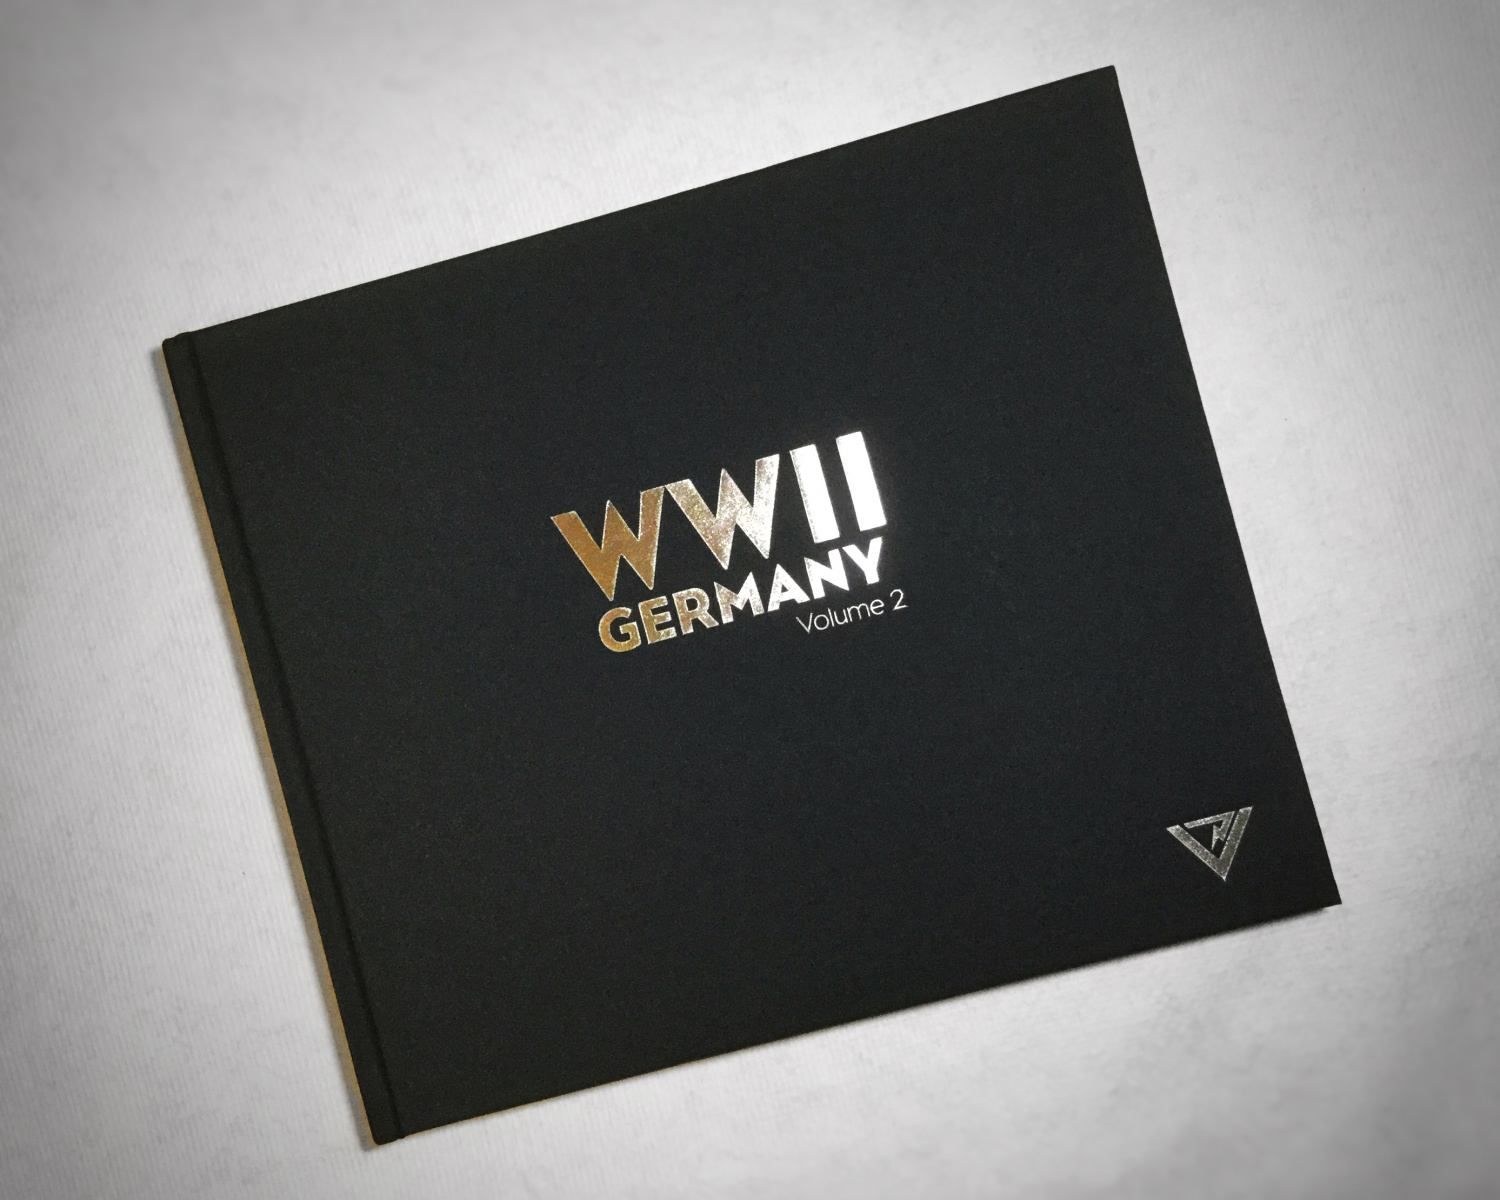 Vickers Guide: WWII Germany, Volume 2 without the cover